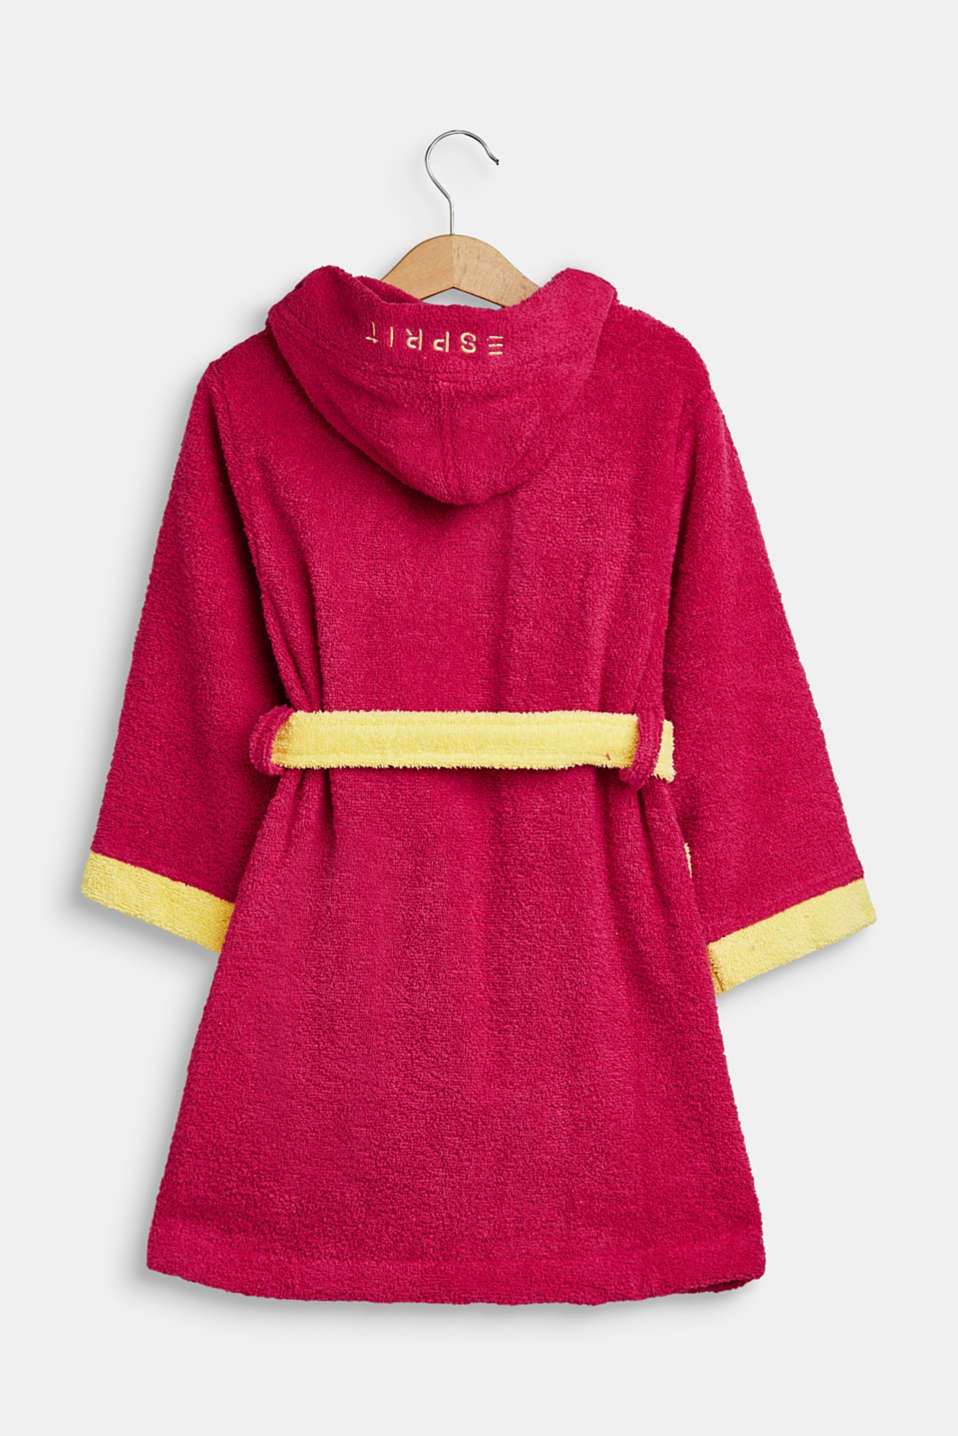 Children's bathrobe in 100% cotton, RASPBERRY/YELLOW, detail image number 1